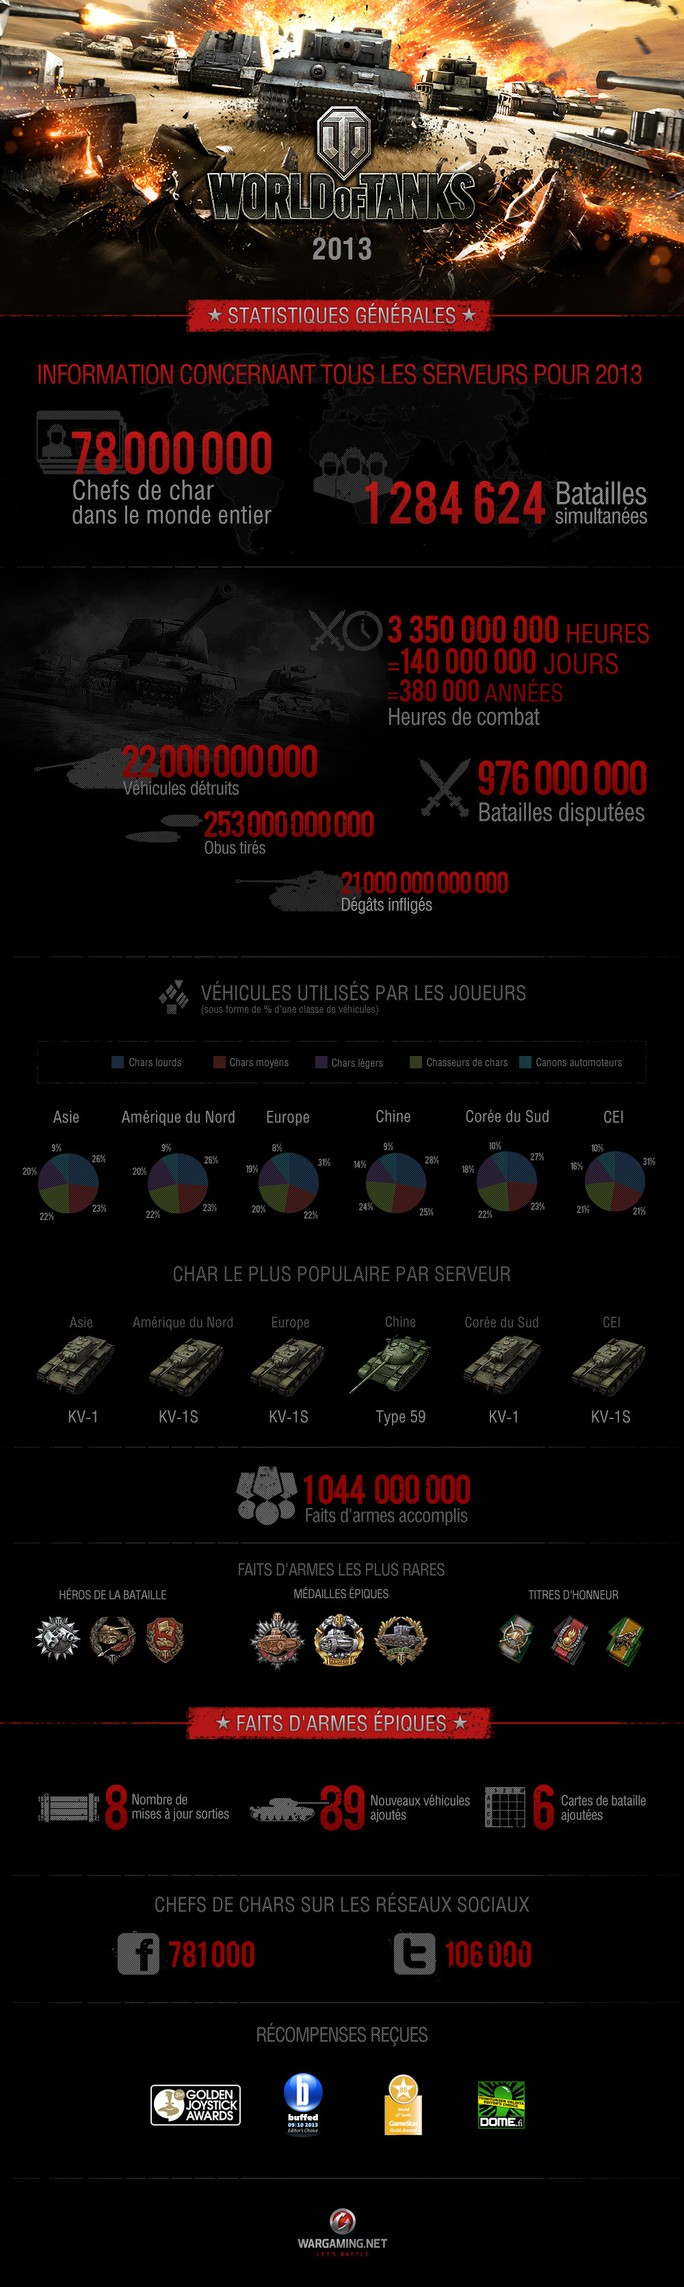 Statistiques 2013 de World of Tanks